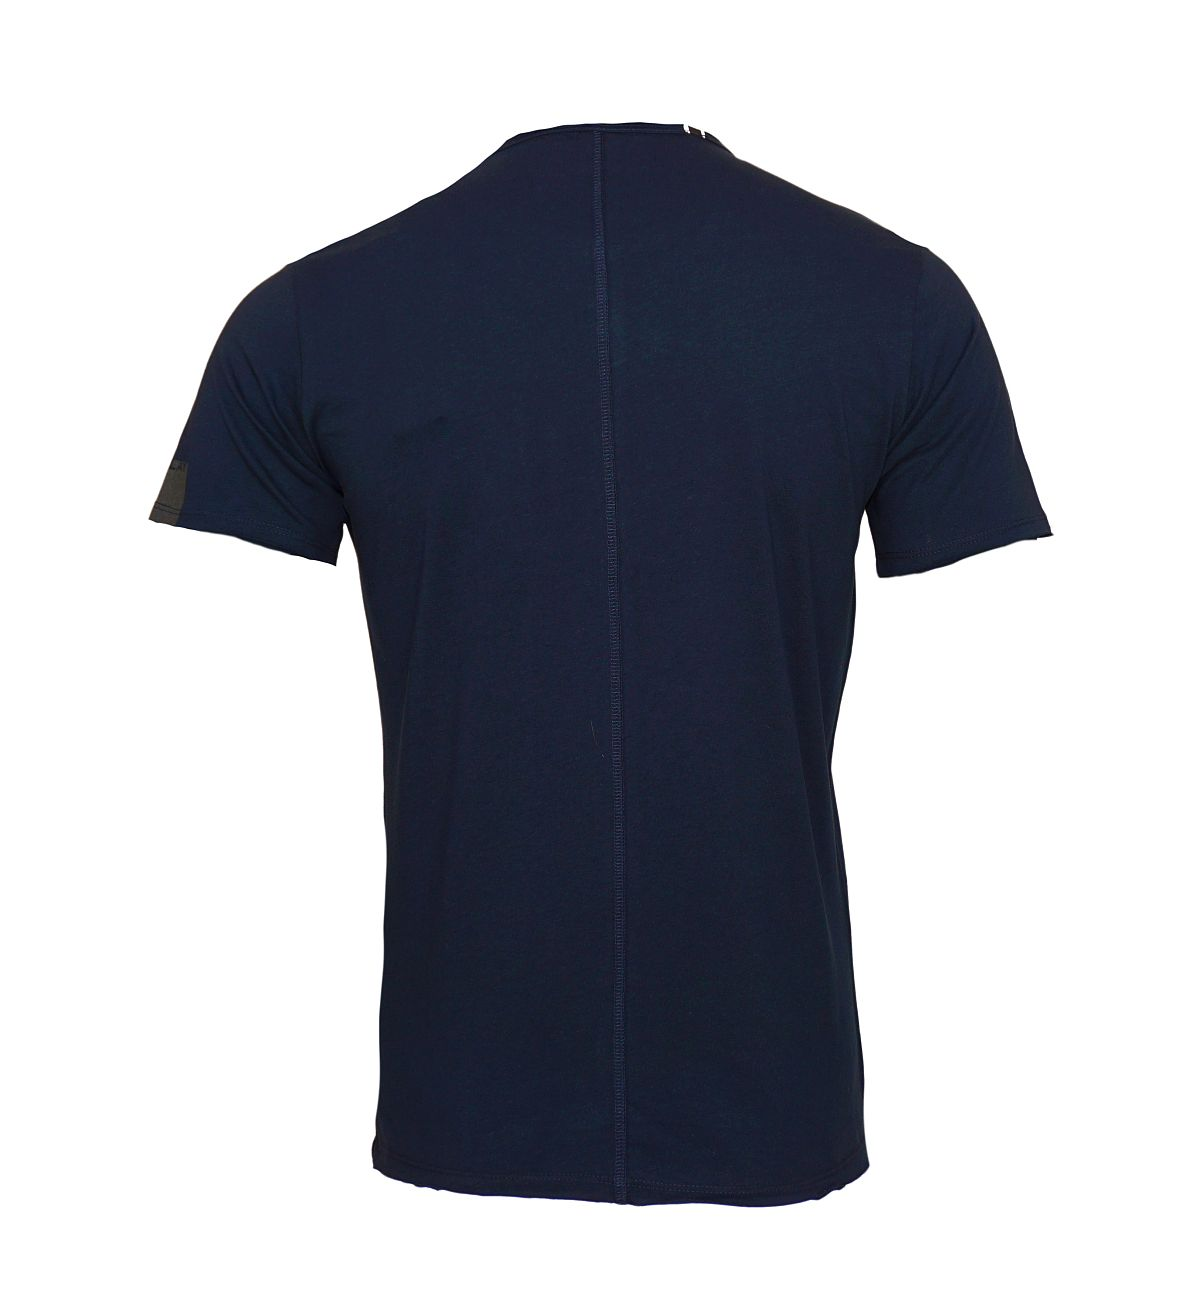 Replay T-Shirt Shirt Rundhals M3590.000 2660.576 MIDNIGHT BLUE S18-RPT2